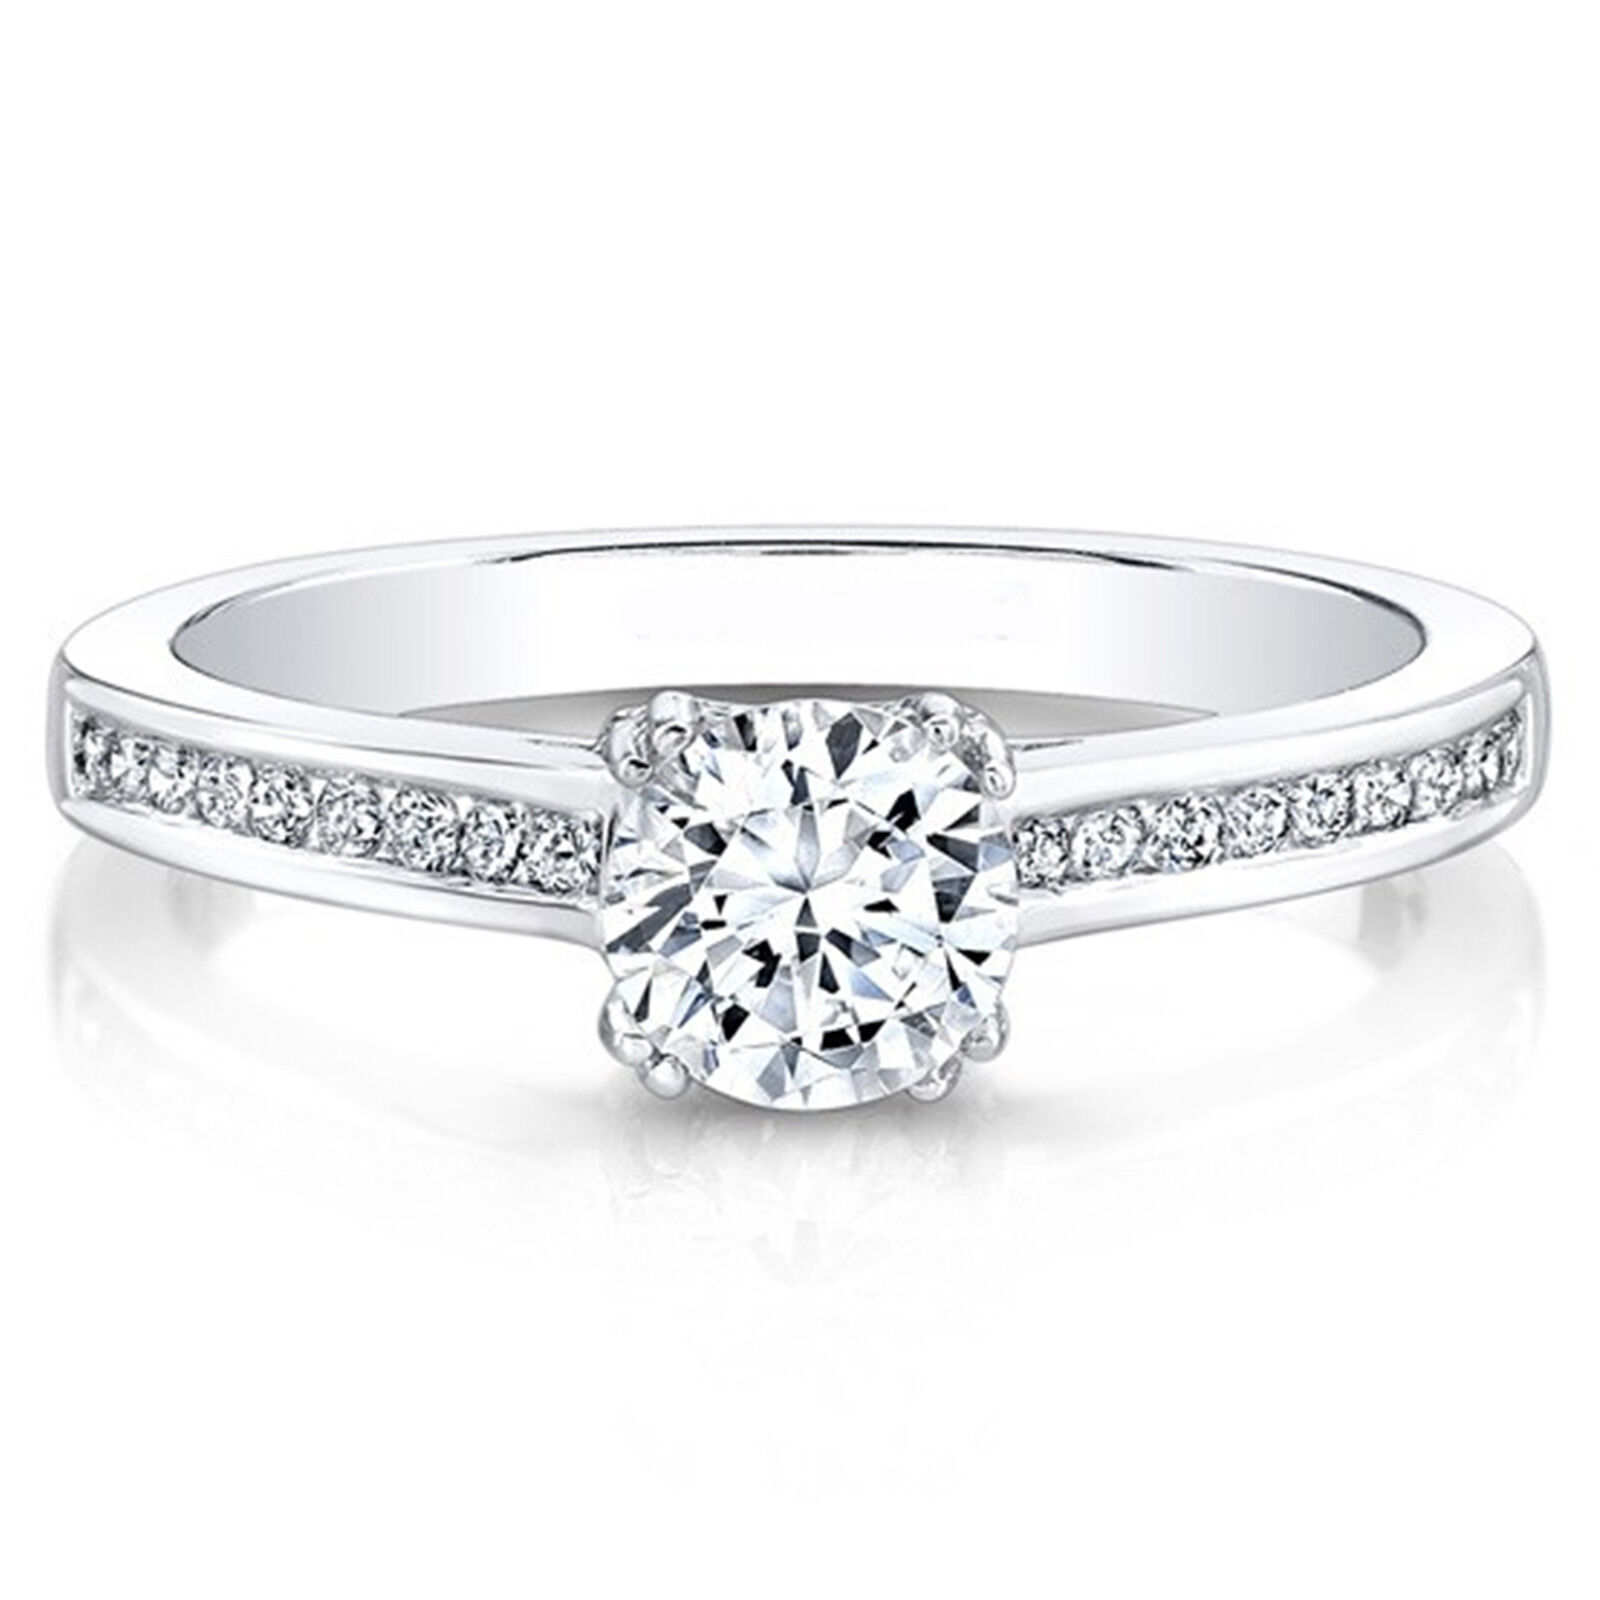 0.60 Ct Round Cut Real Diamond Engagement Ring 14K Solid White gold Size 5 6.5 7